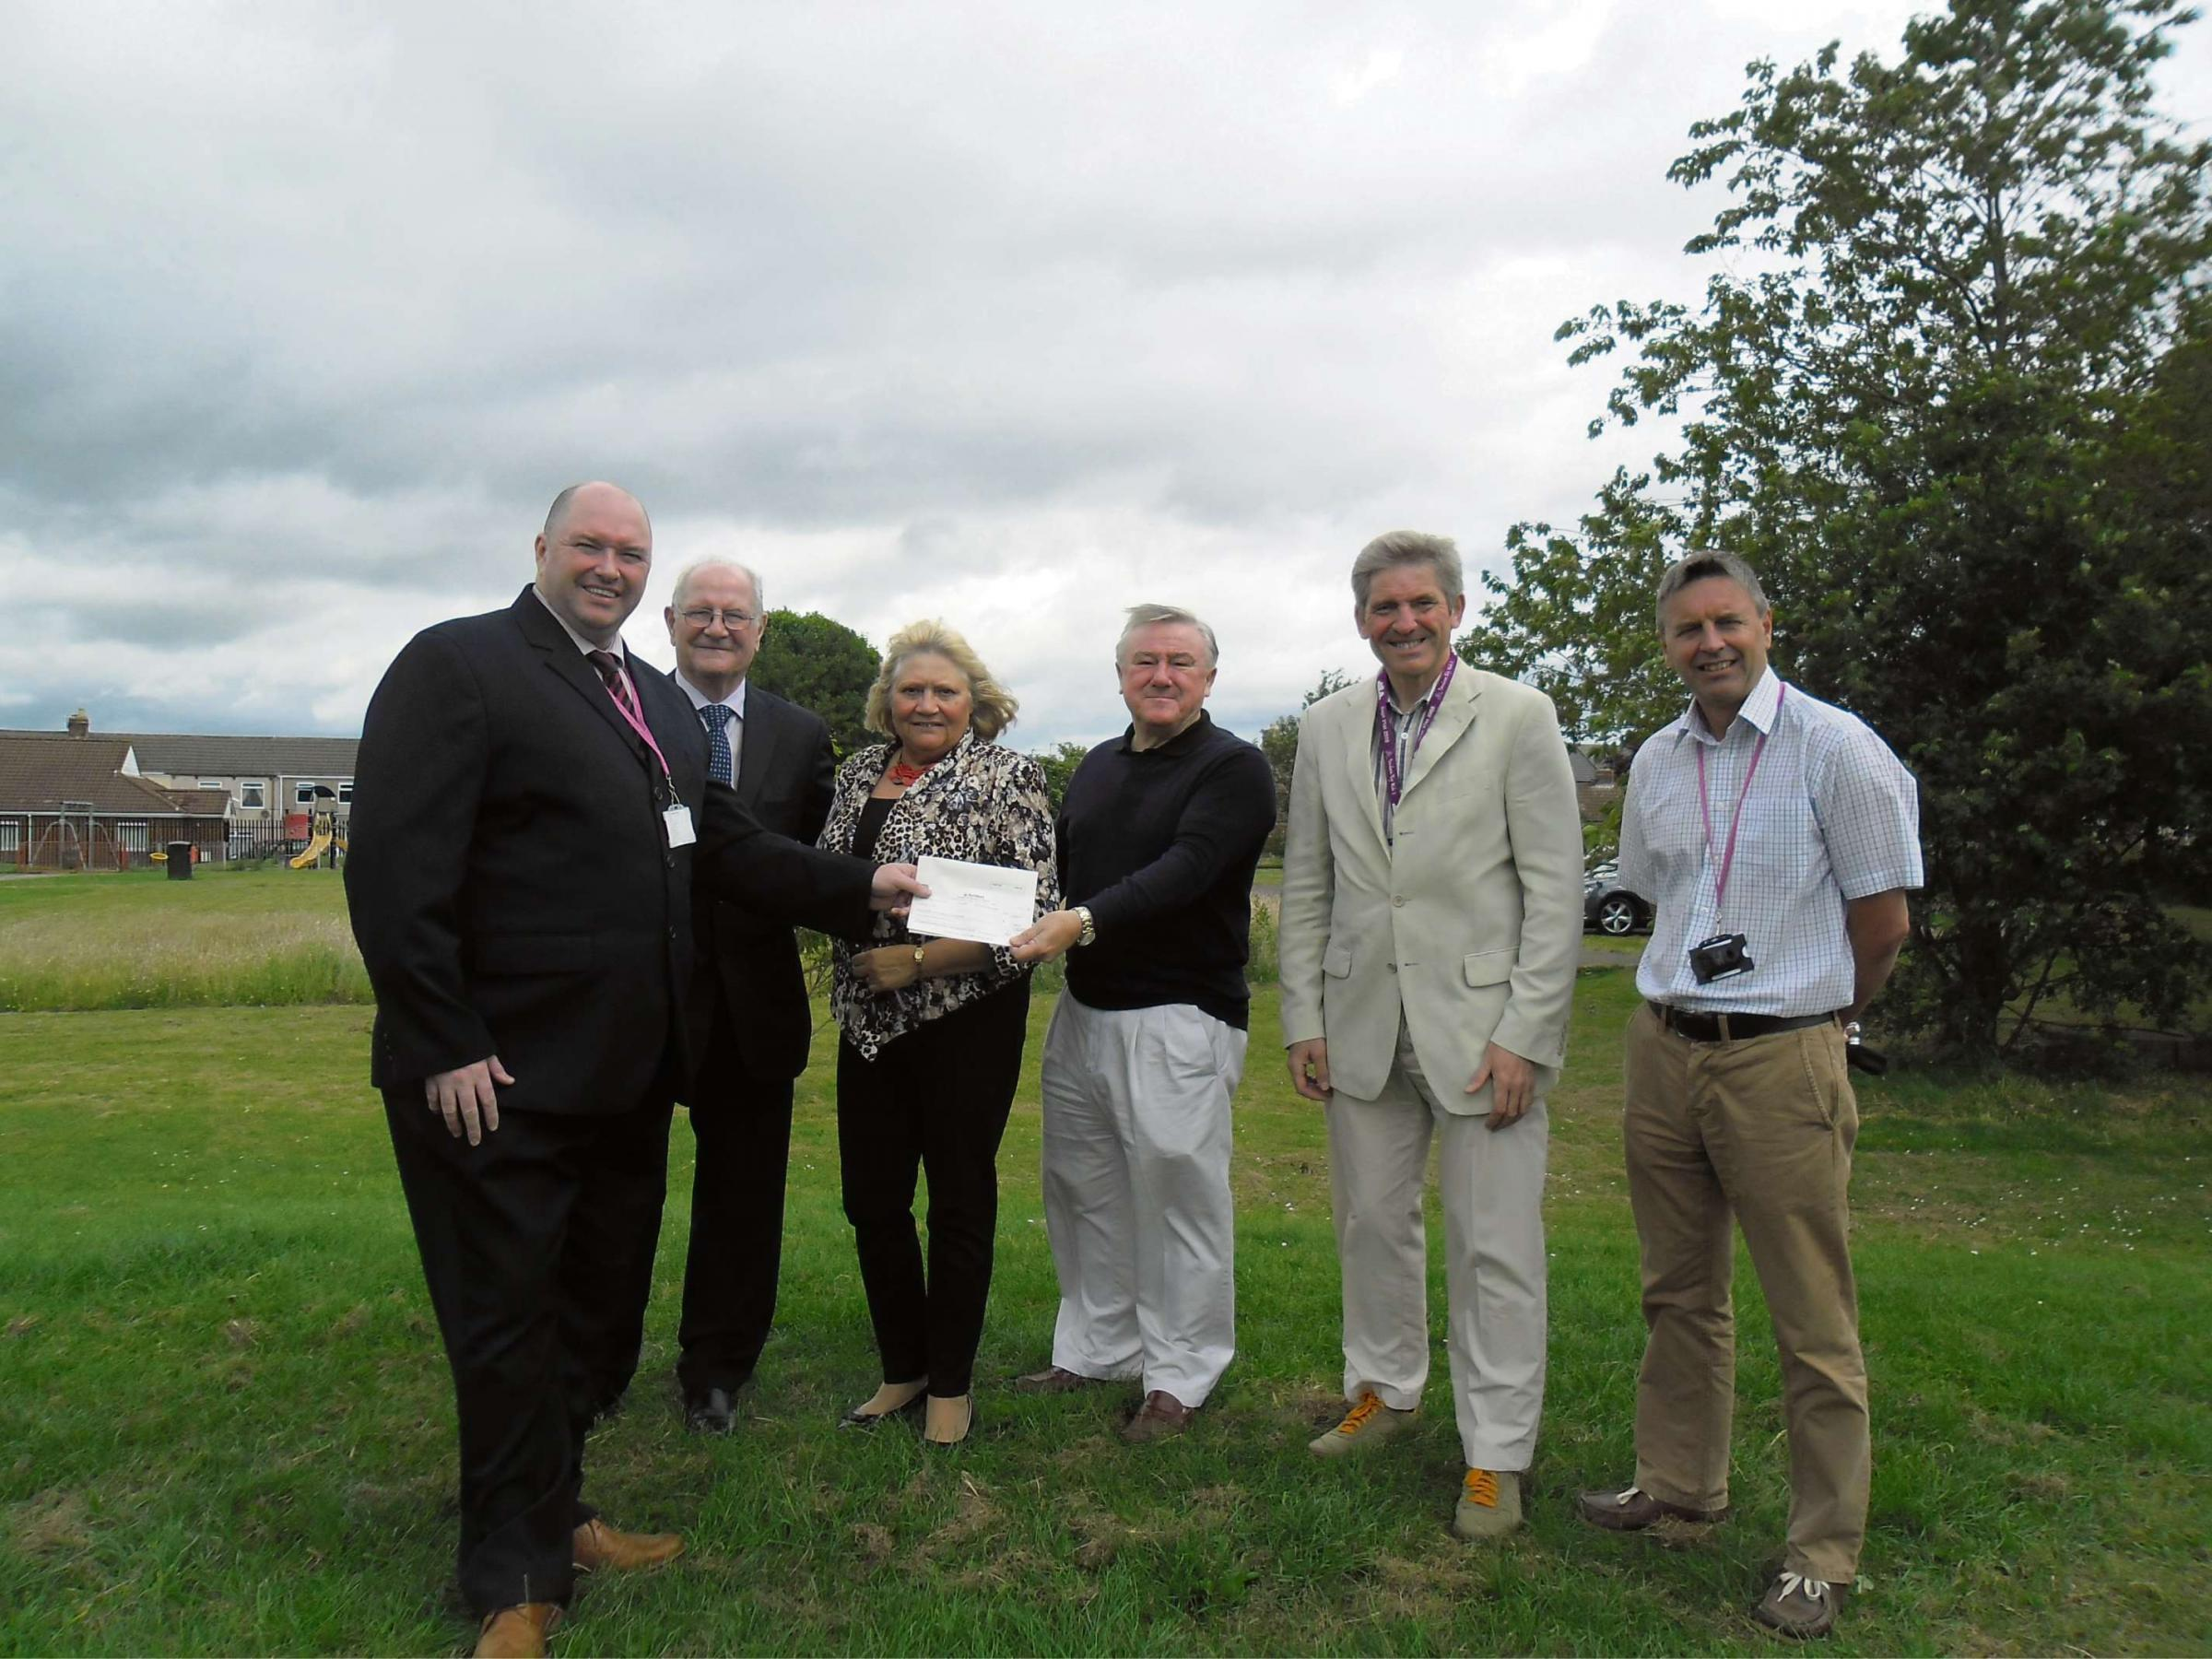 GYM GRANT:  (L to R) Malcolm Gray, community investment advisor for livin,Councillor Morris Nicholls, Councillor Lucy Hovvels, Dr Alan Bell, treasurer of Trimdon Colliery Community Association, Councillor Peter Brookes and Paul Todd, community coordinator